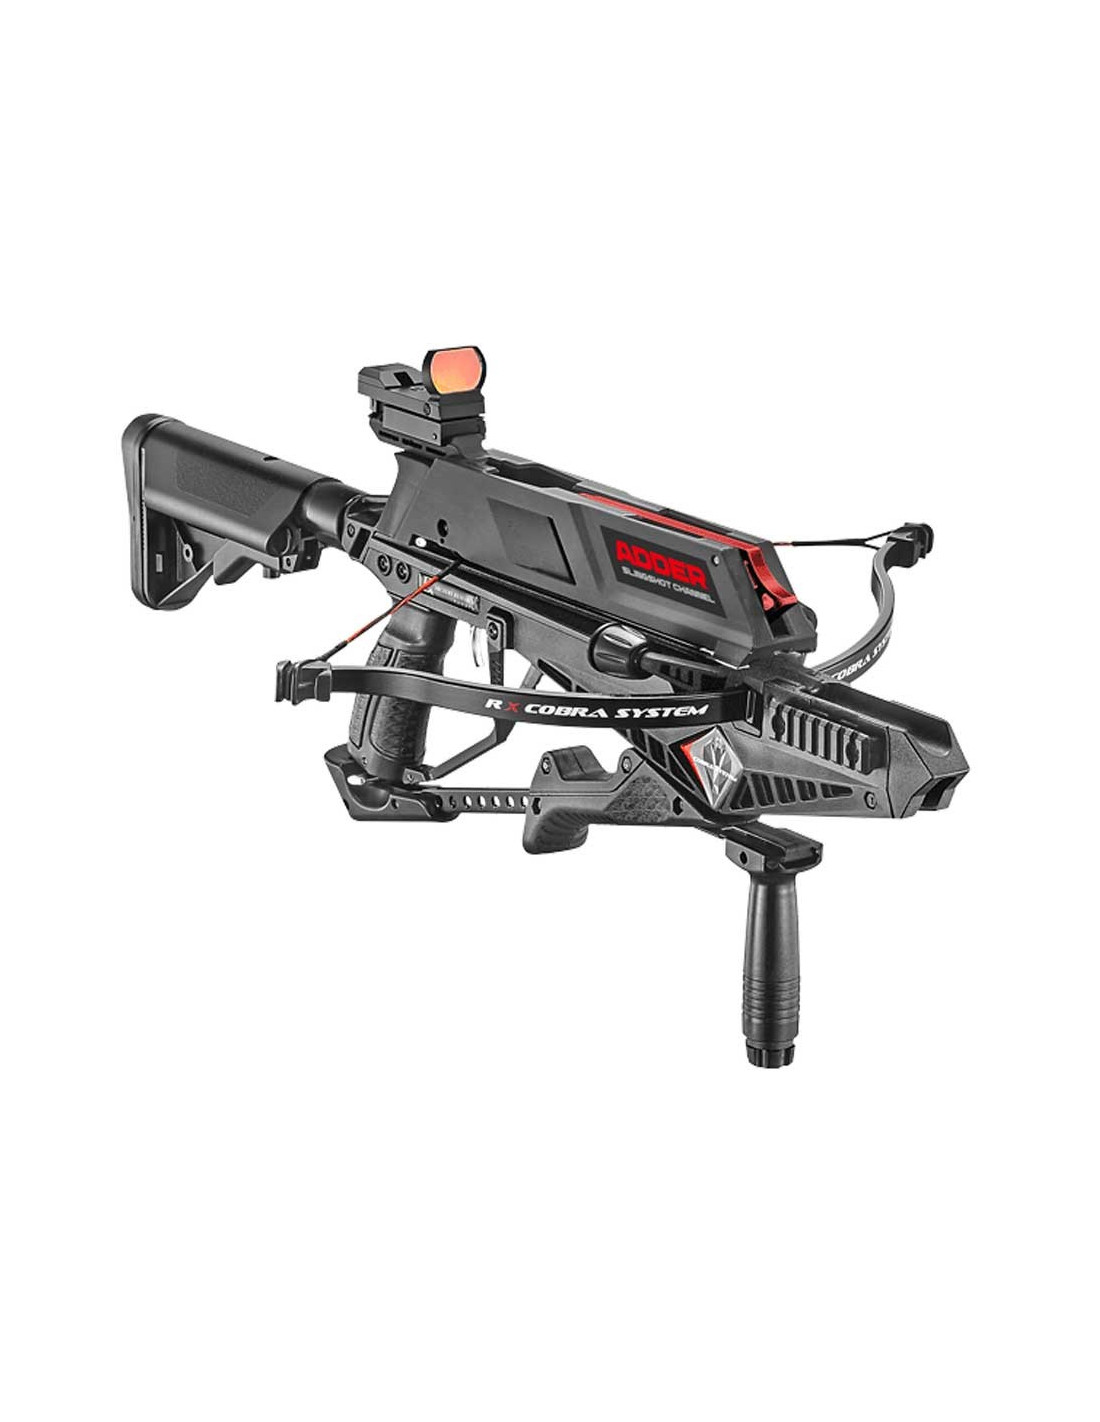 Cobra RX Adder automatic loader crossbow